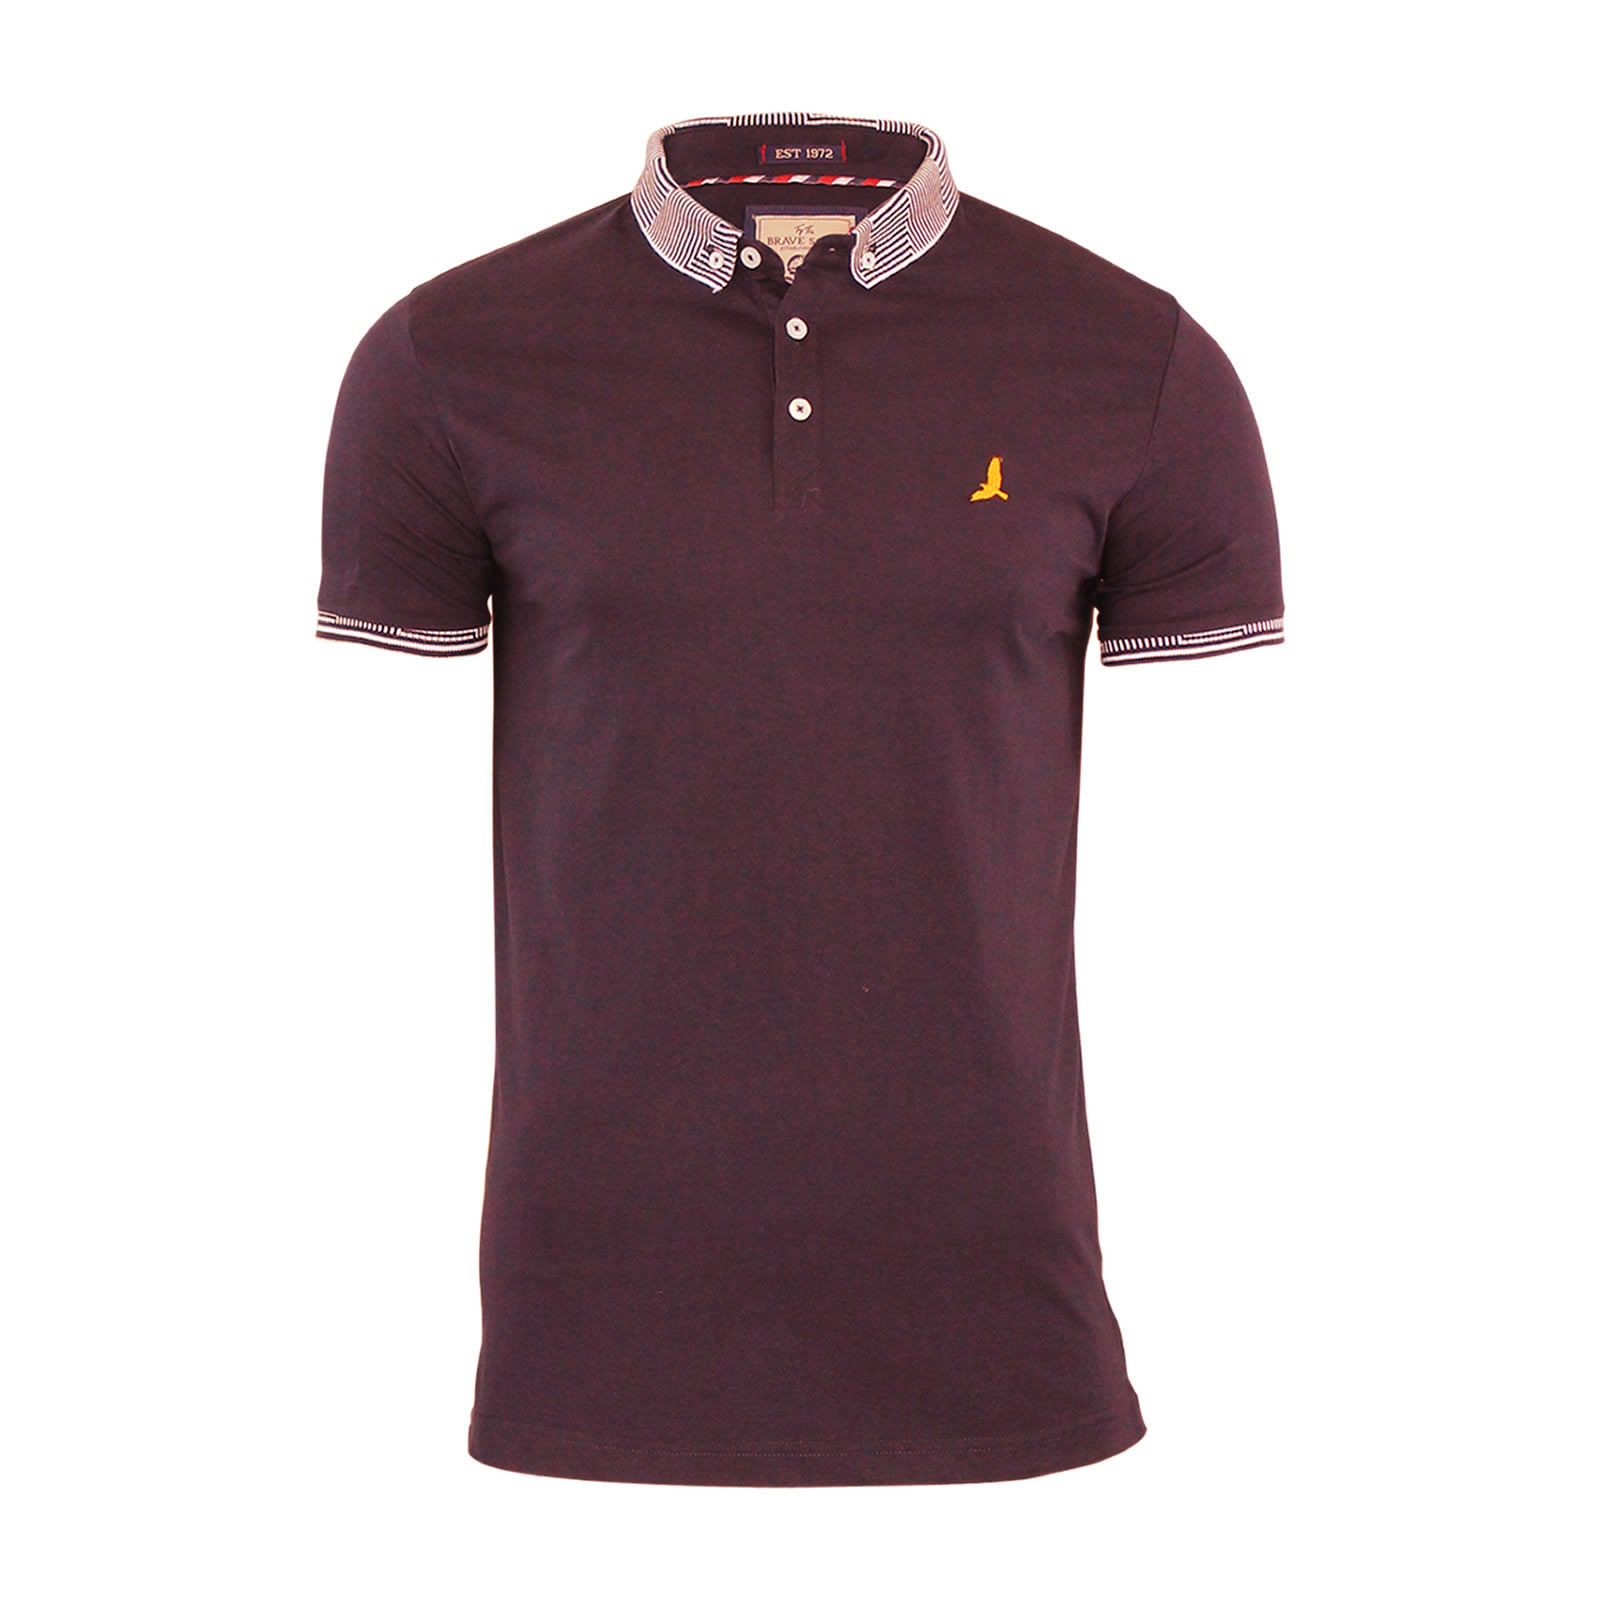 Shop collared polo shirt at Neiman Marcus, where you will find free shipping on the latest in fashion from top designers.